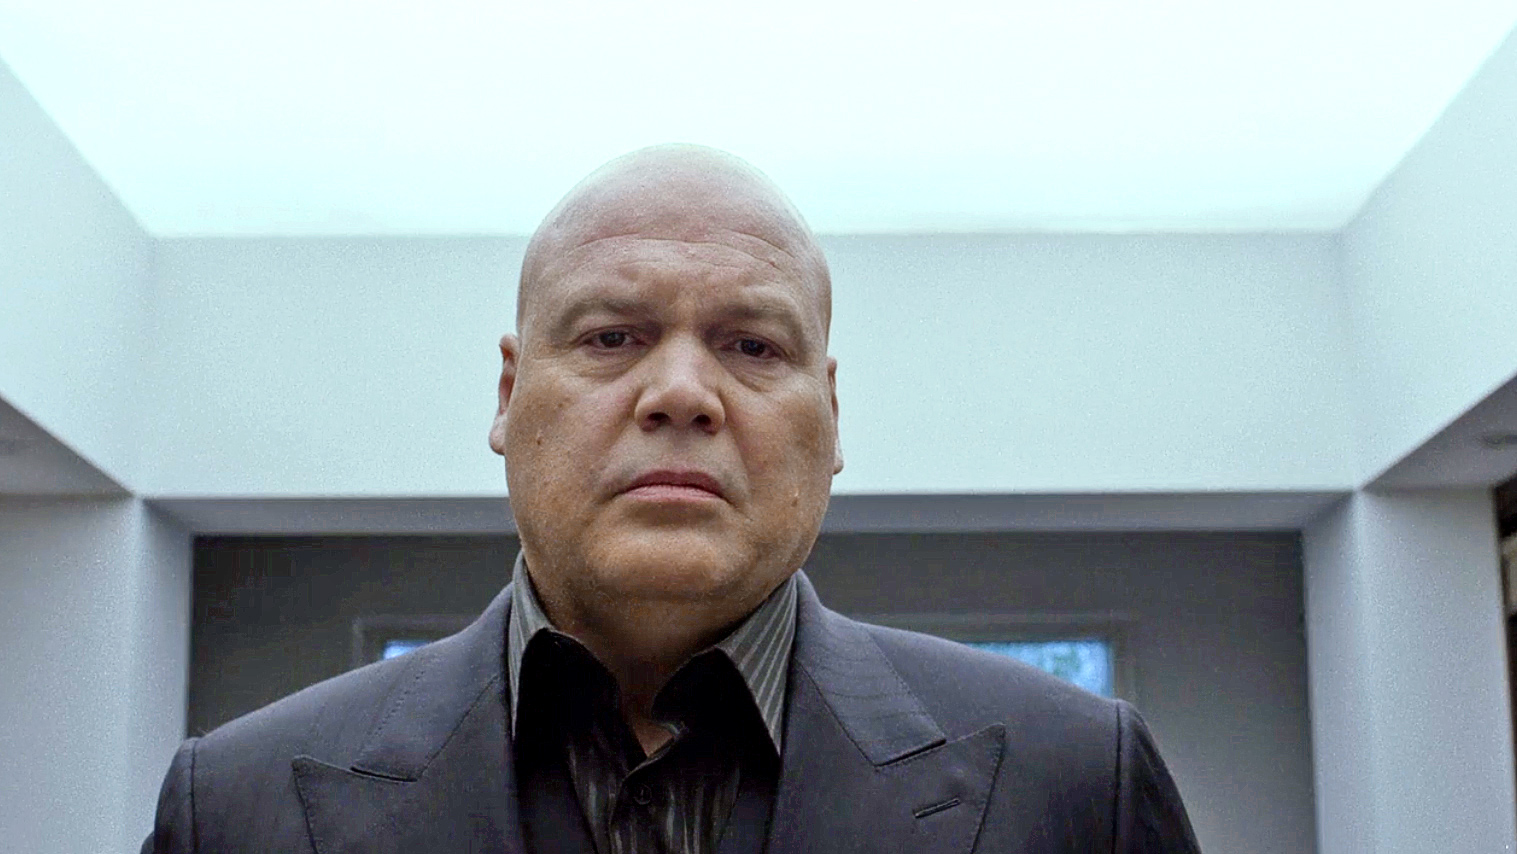 Wilson Fisk on Daredevil